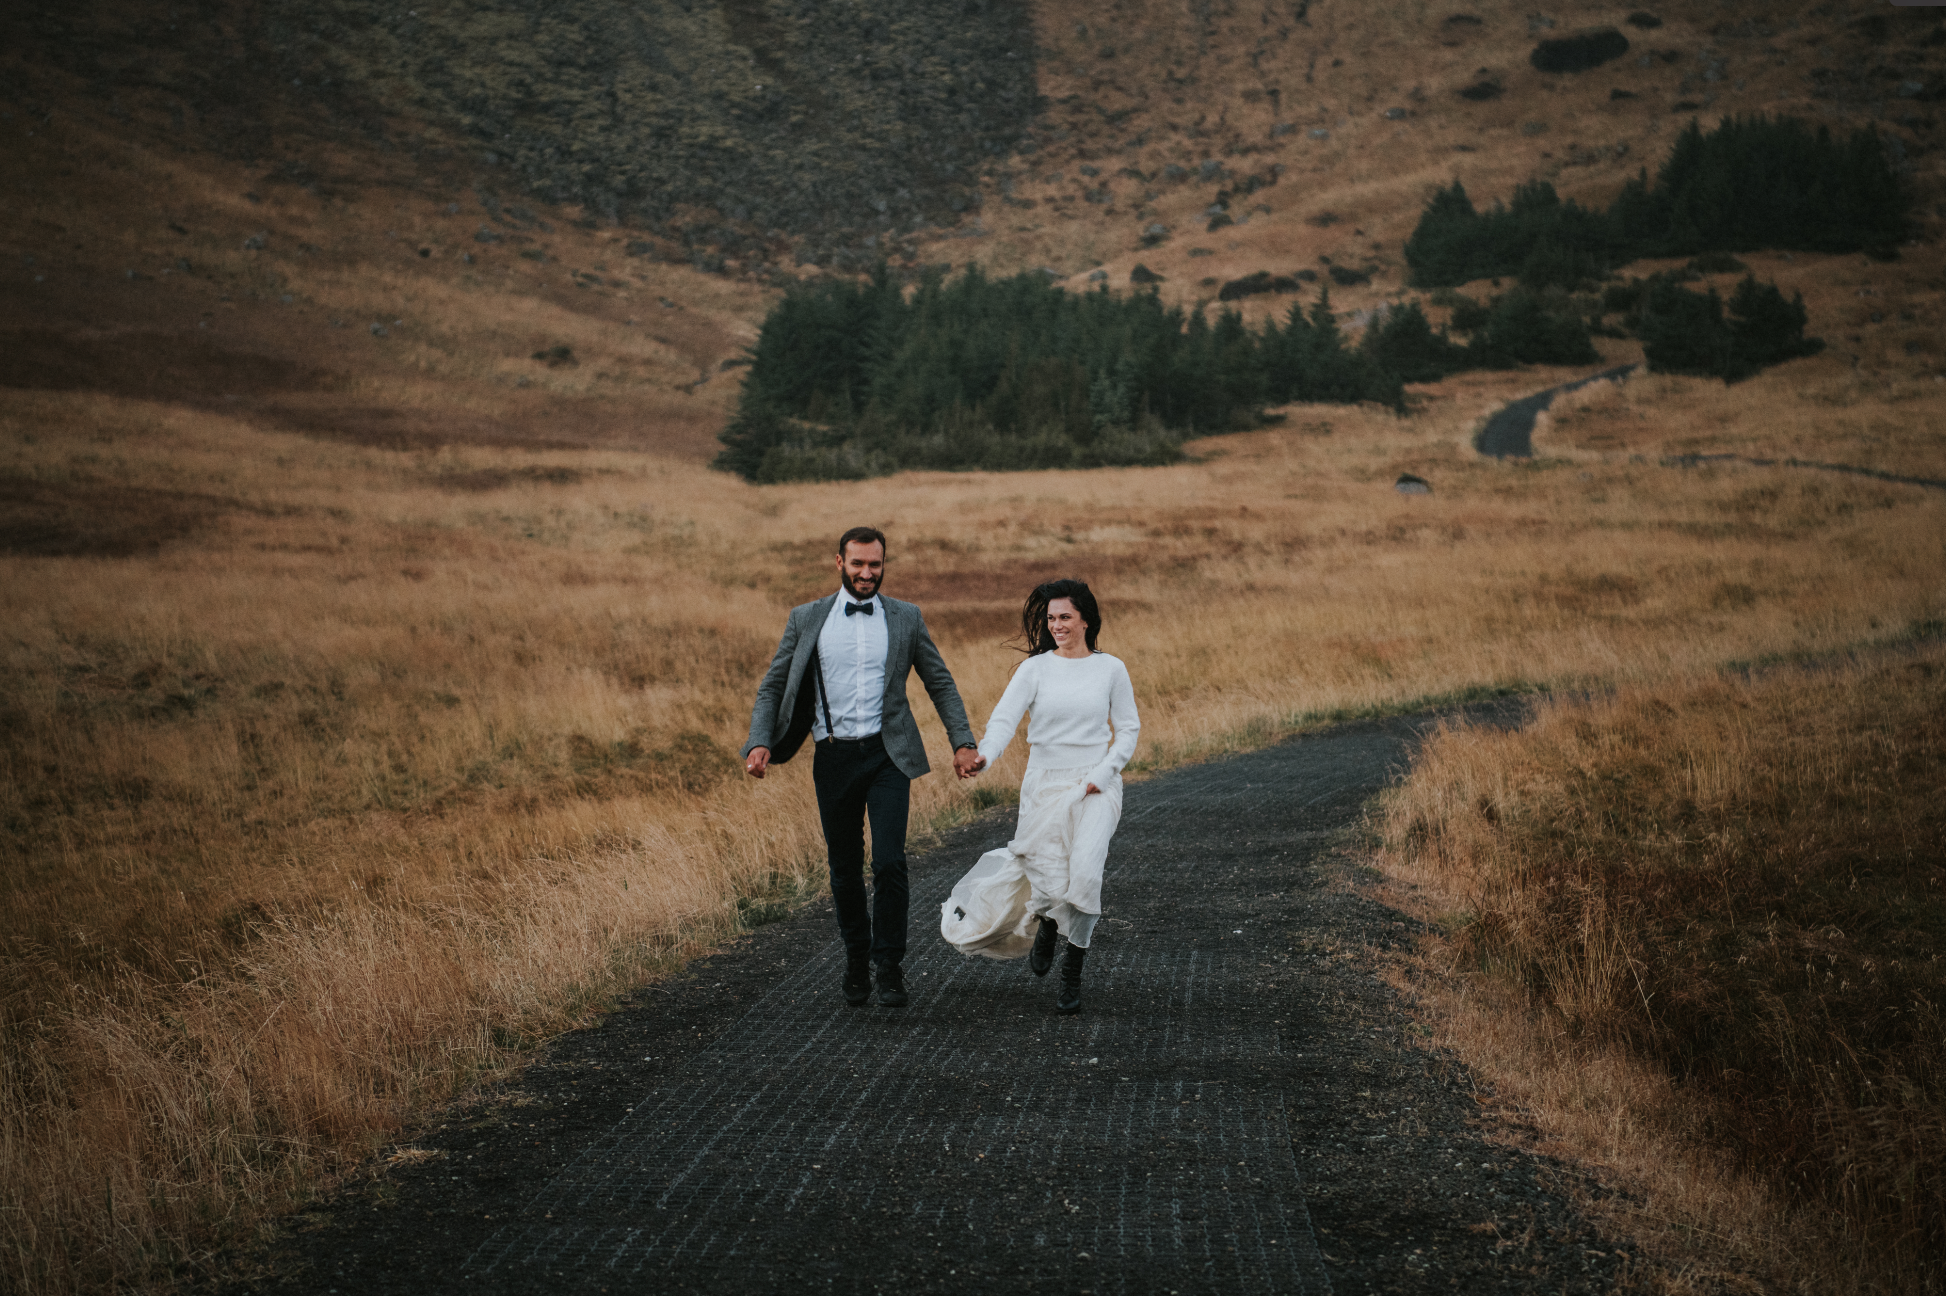 Natalie-Vitaly-Iceland-Elopement-Photographer-Videographer-53